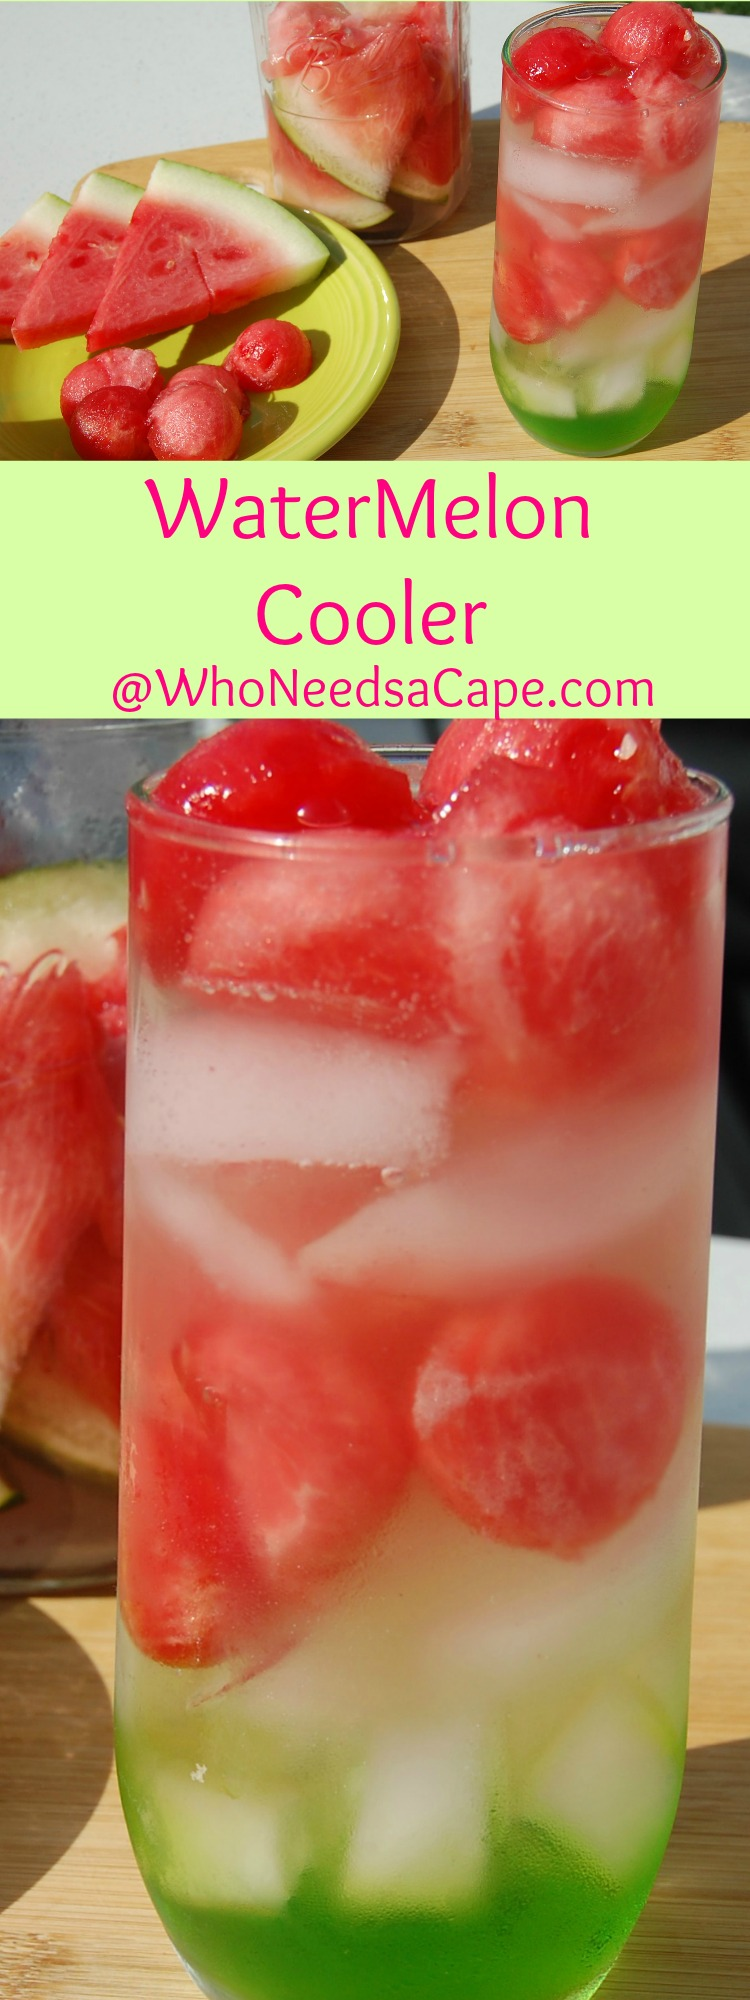 Watermelon Cooler is the most amazing cocktail. Tastes like summer in a glass! Easy but SO impressive! Who Needs A Cape